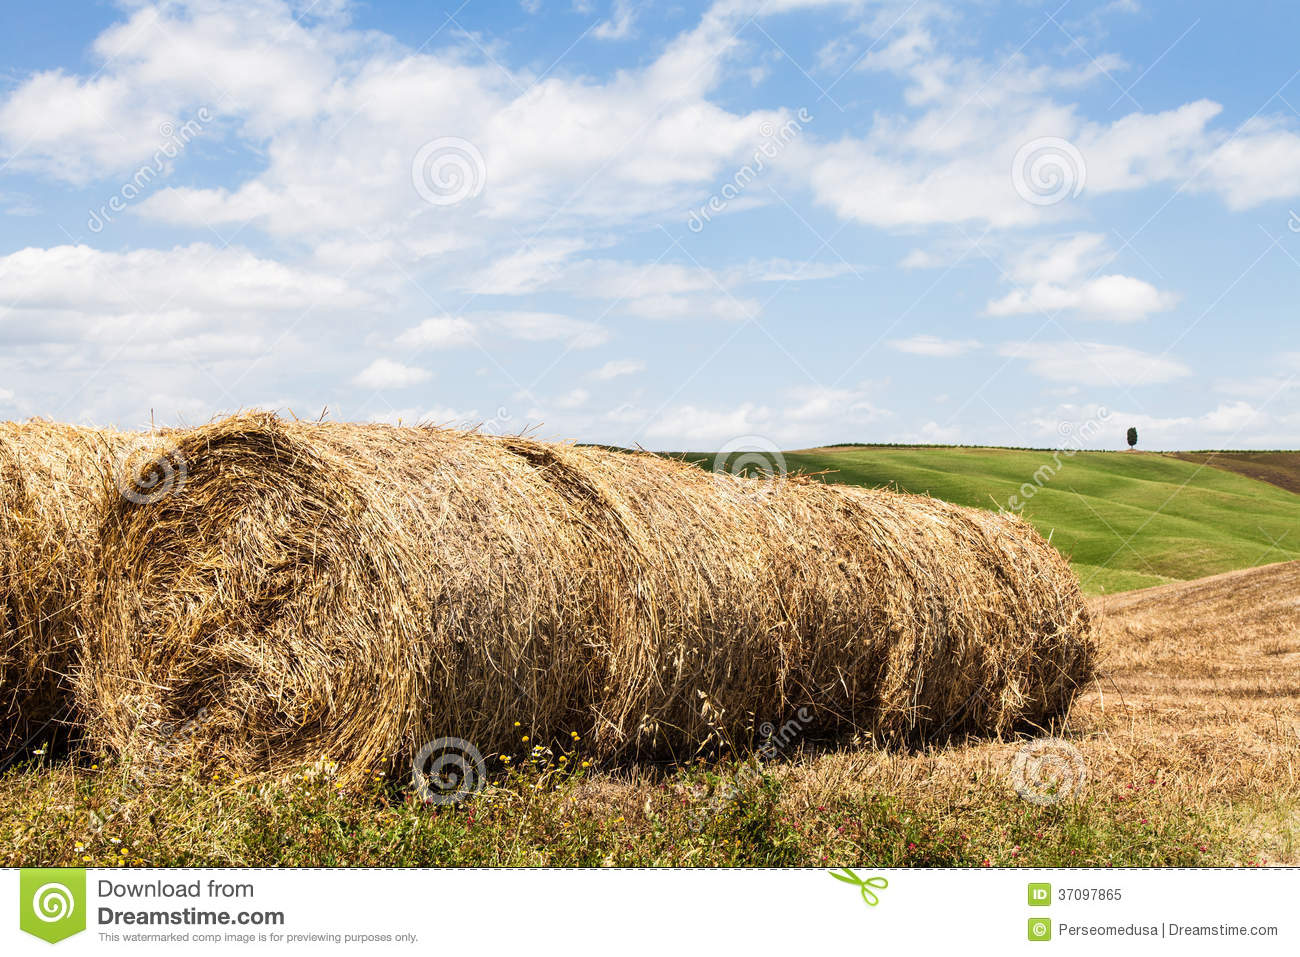 Tuscany Agriculture Royalty Free Stock Photo - Image: 37097865